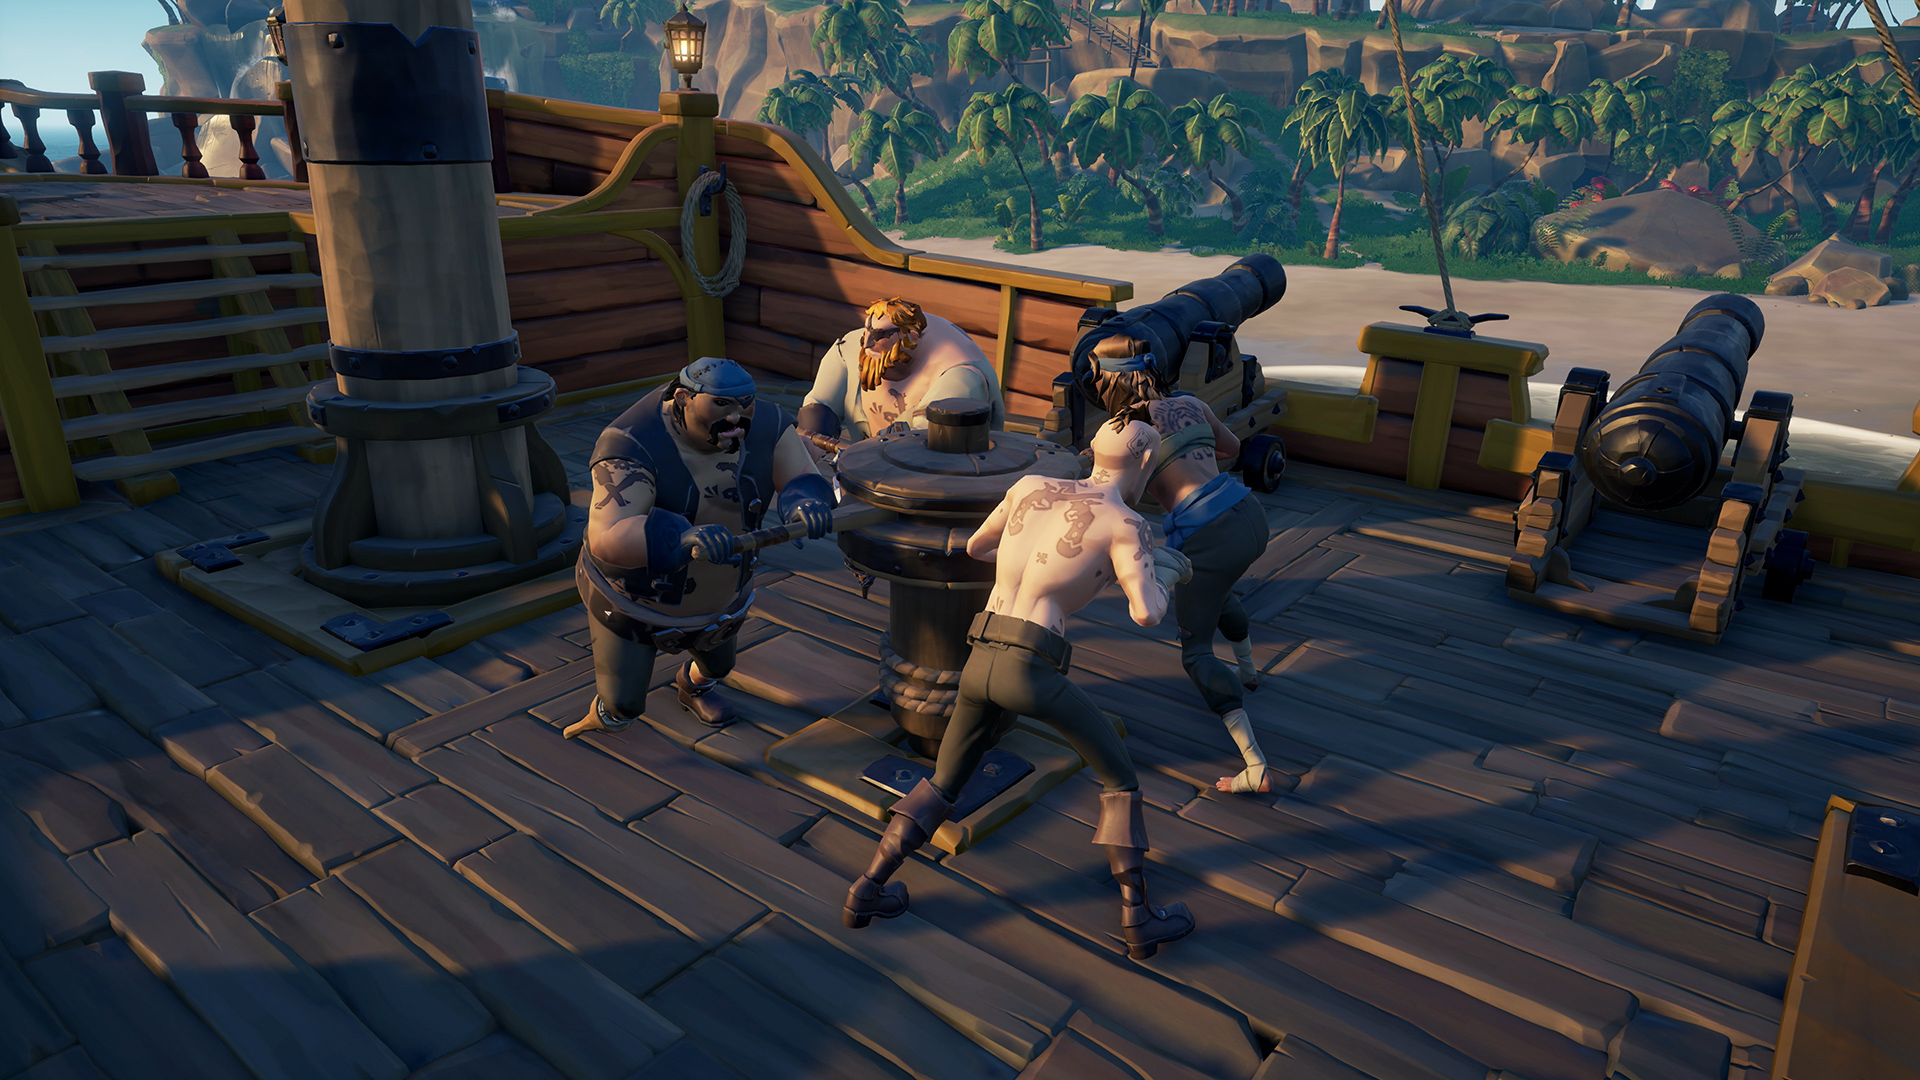 sea of thieves co-operation